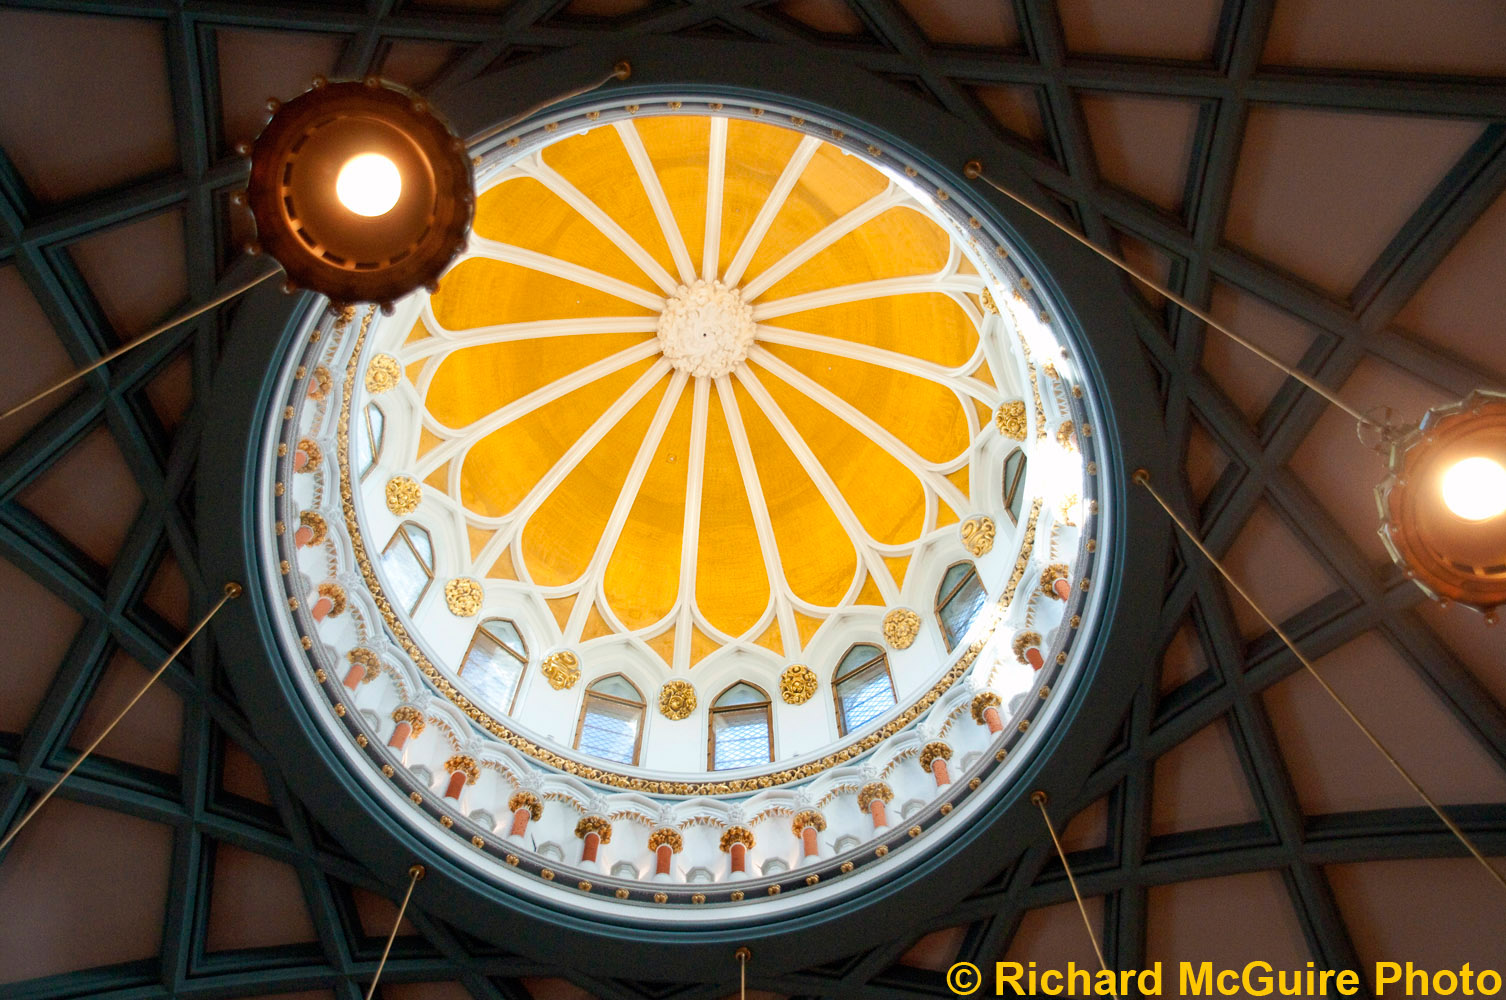 The cupola, Library of Parliament, Ottawa